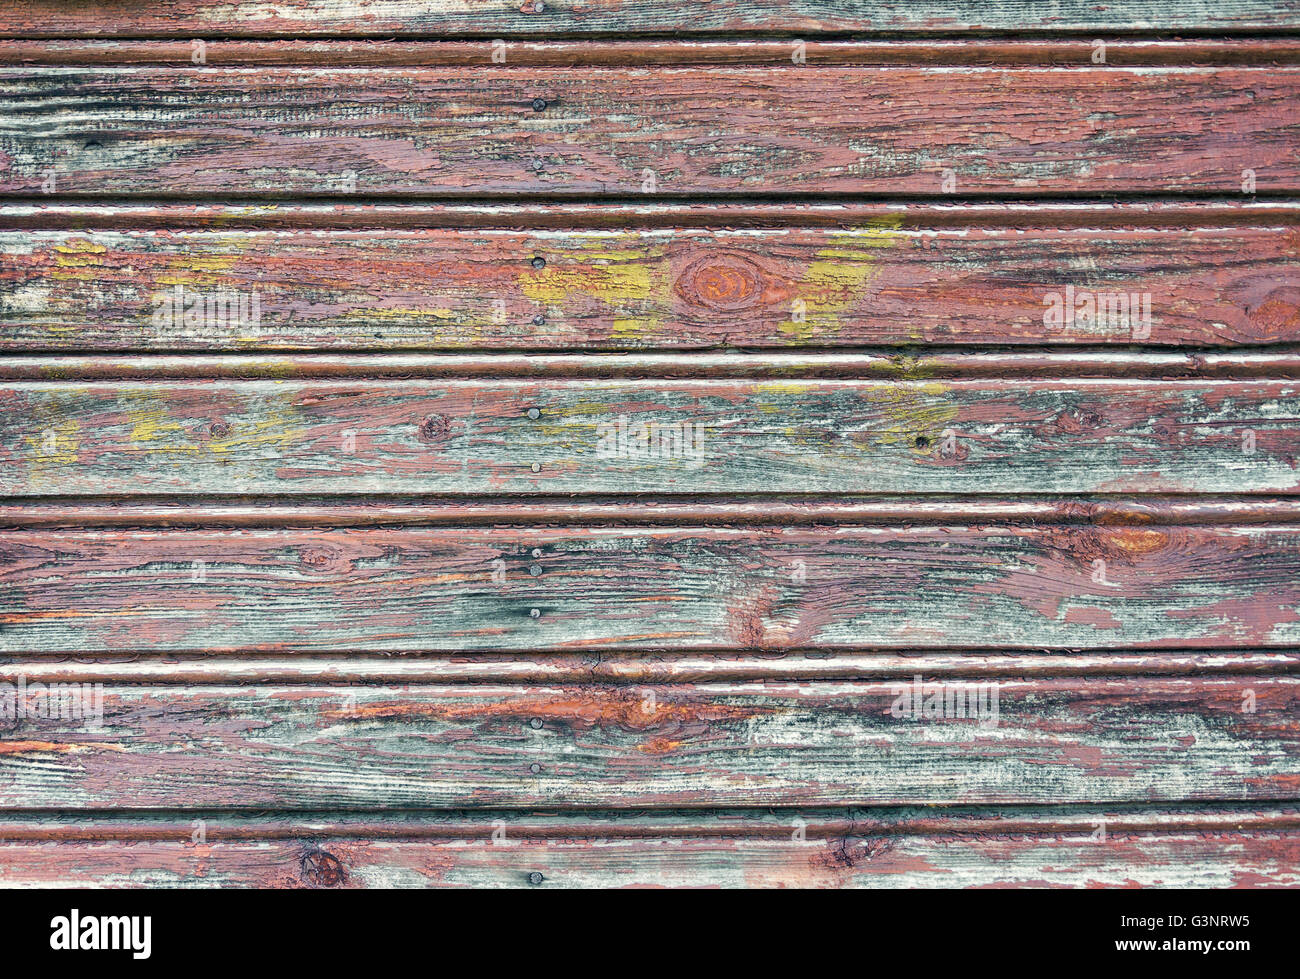 Old wooden planks texture with weathered paint - Stock Image